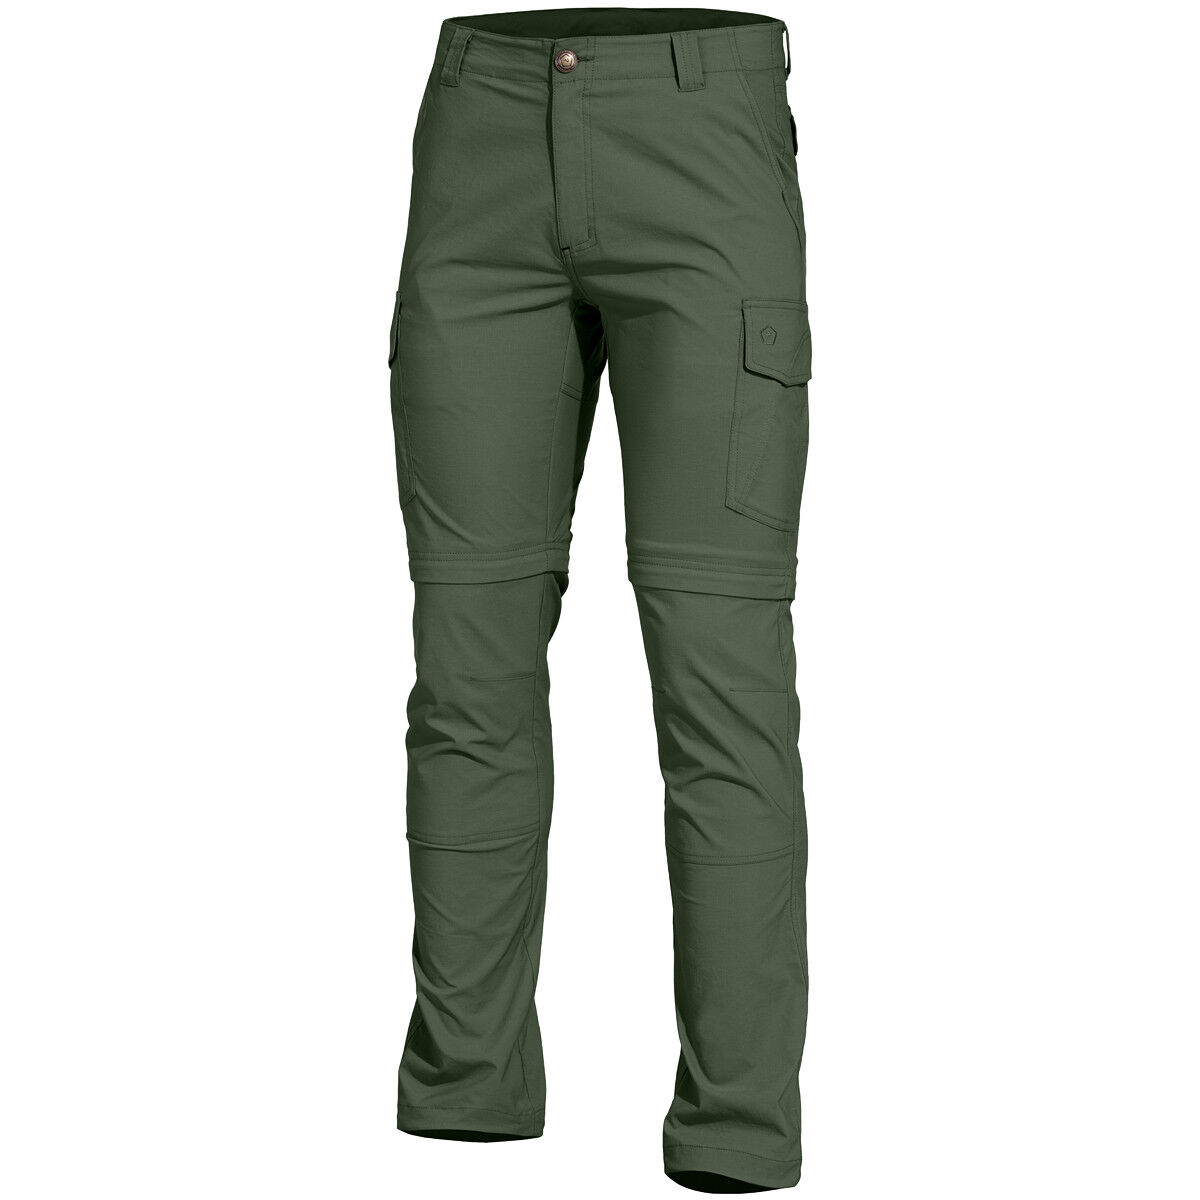 Pentagon Gomati XTR Pants Outdoor Tactical Zip Off Legs Work Trousers Camo Green